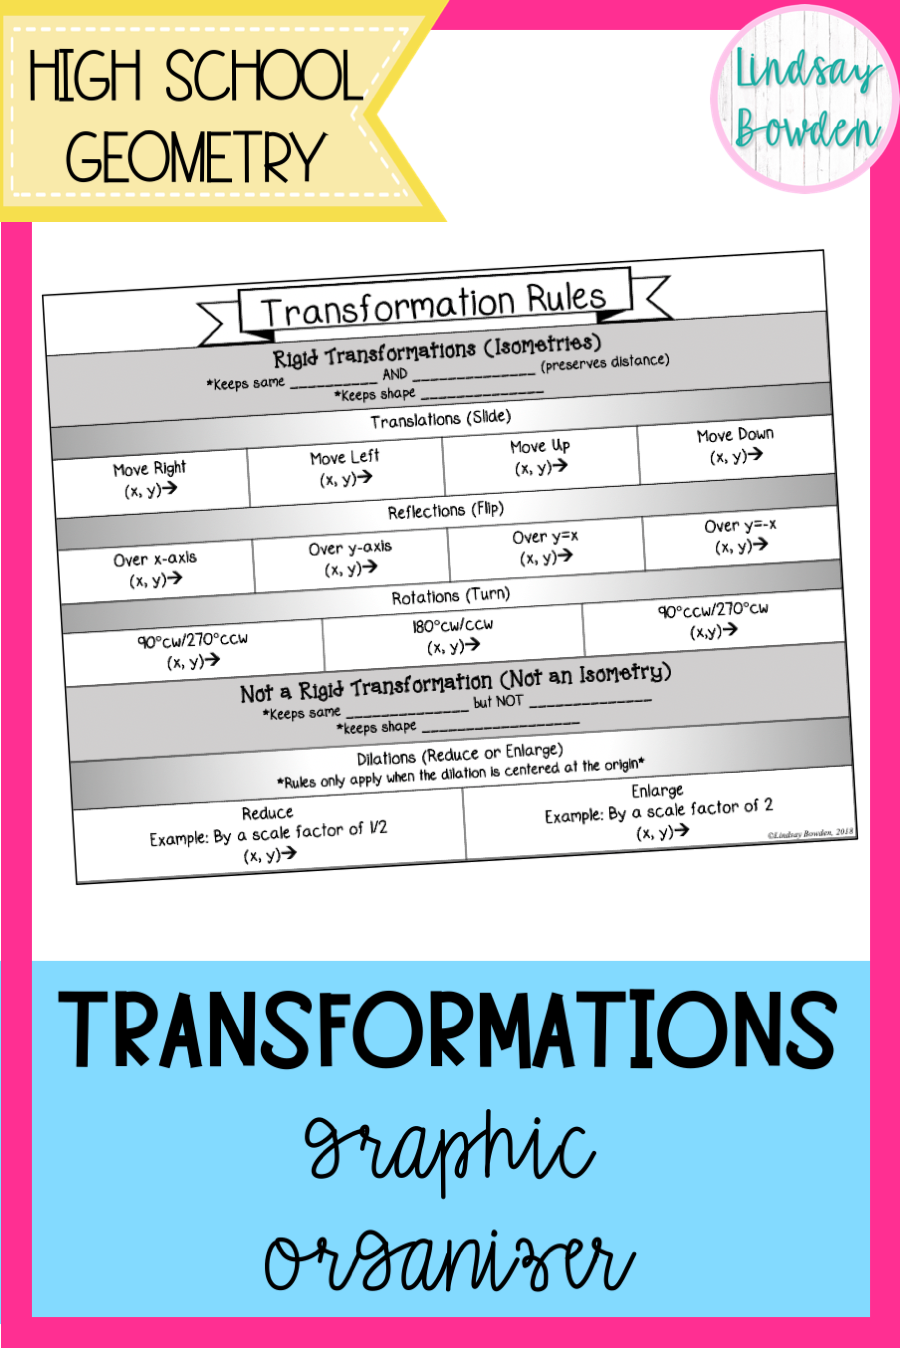 High School Geometry Transformations Graphic Organizer This Organizer Helps Students Memorize The Co Graphic Organizers Reflection Math How To Memorize Things [ 1350 x 900 Pixel ]